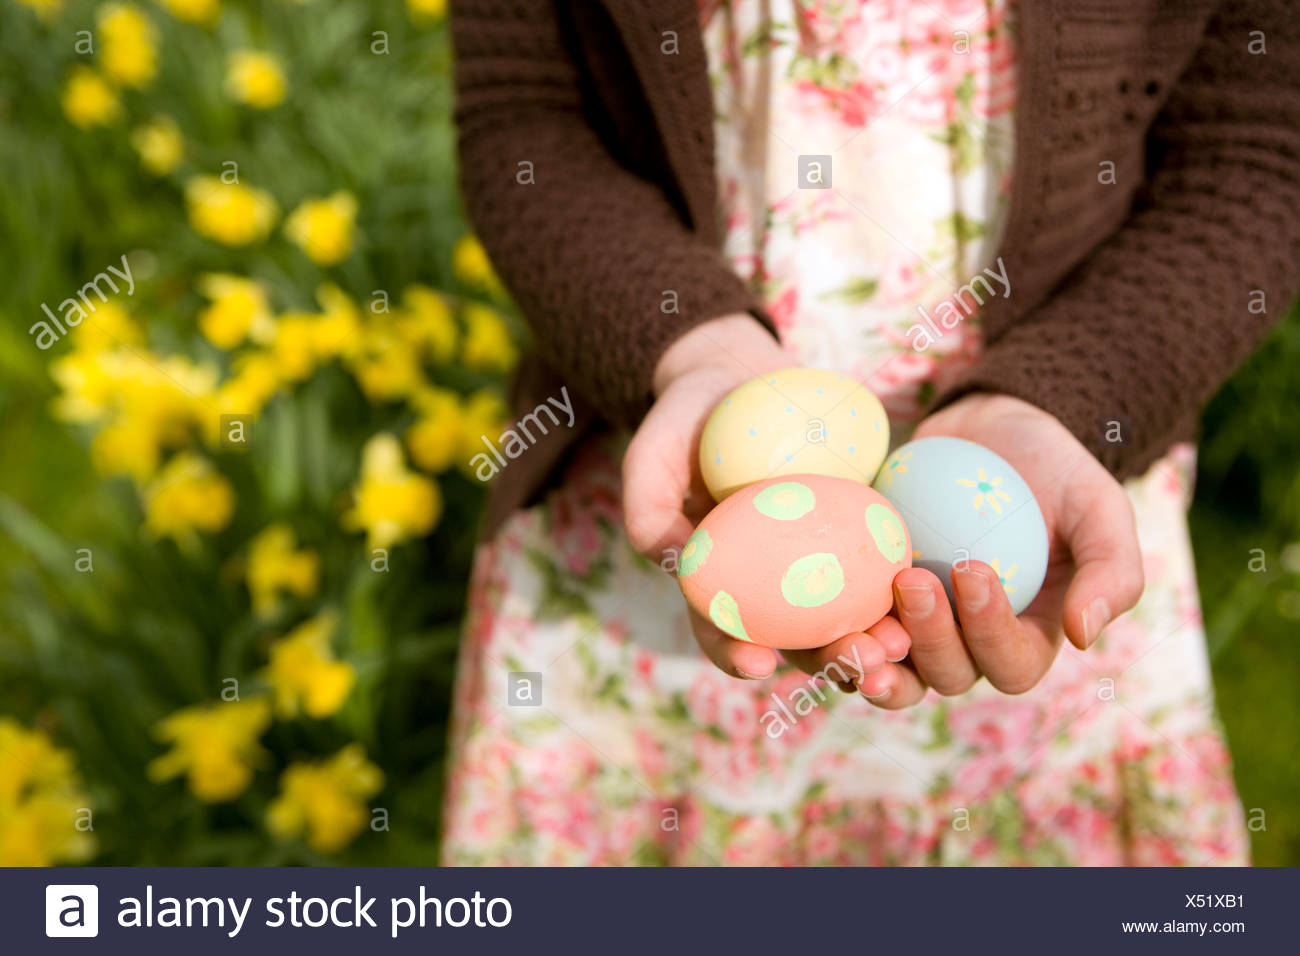 Young girl holding decorated Easter eggs - Stock Image